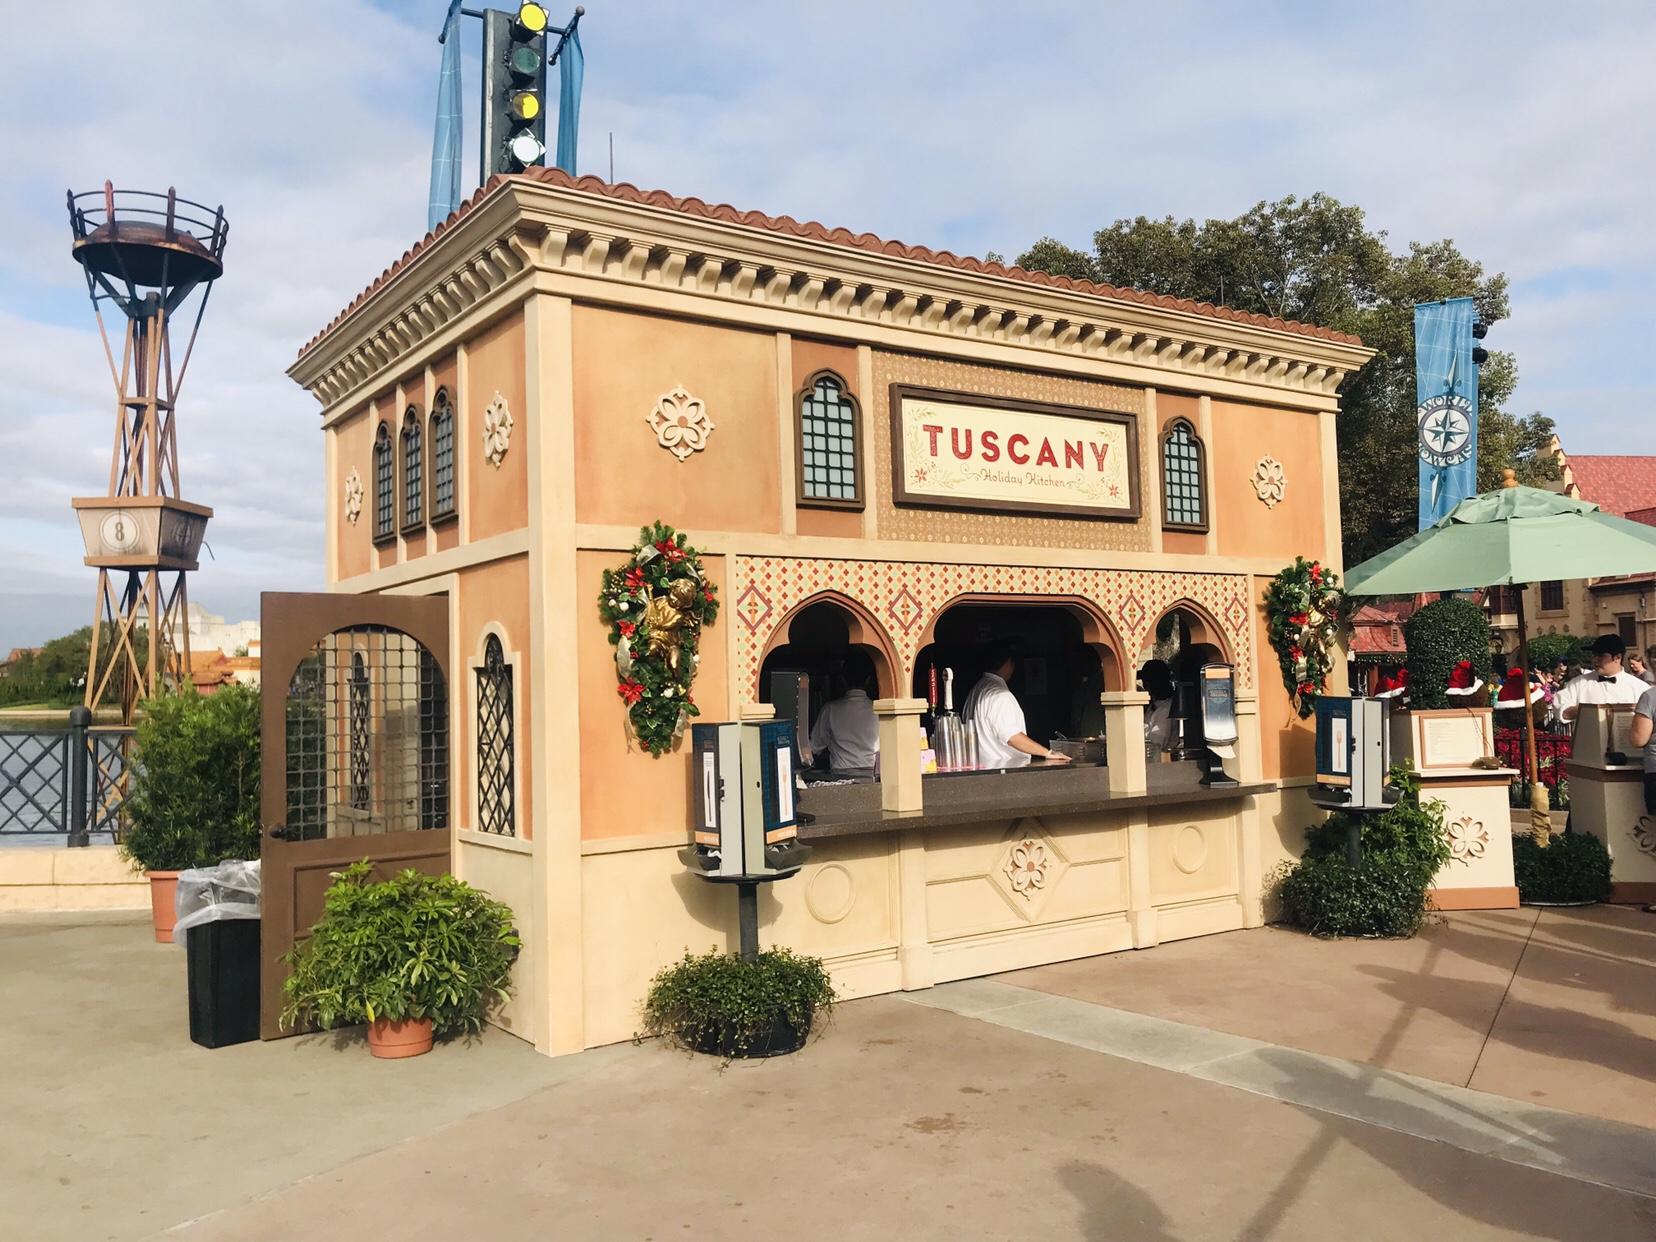 Tuscany Italy Holiday Kitchen booth menu Epcot Holiday Festival